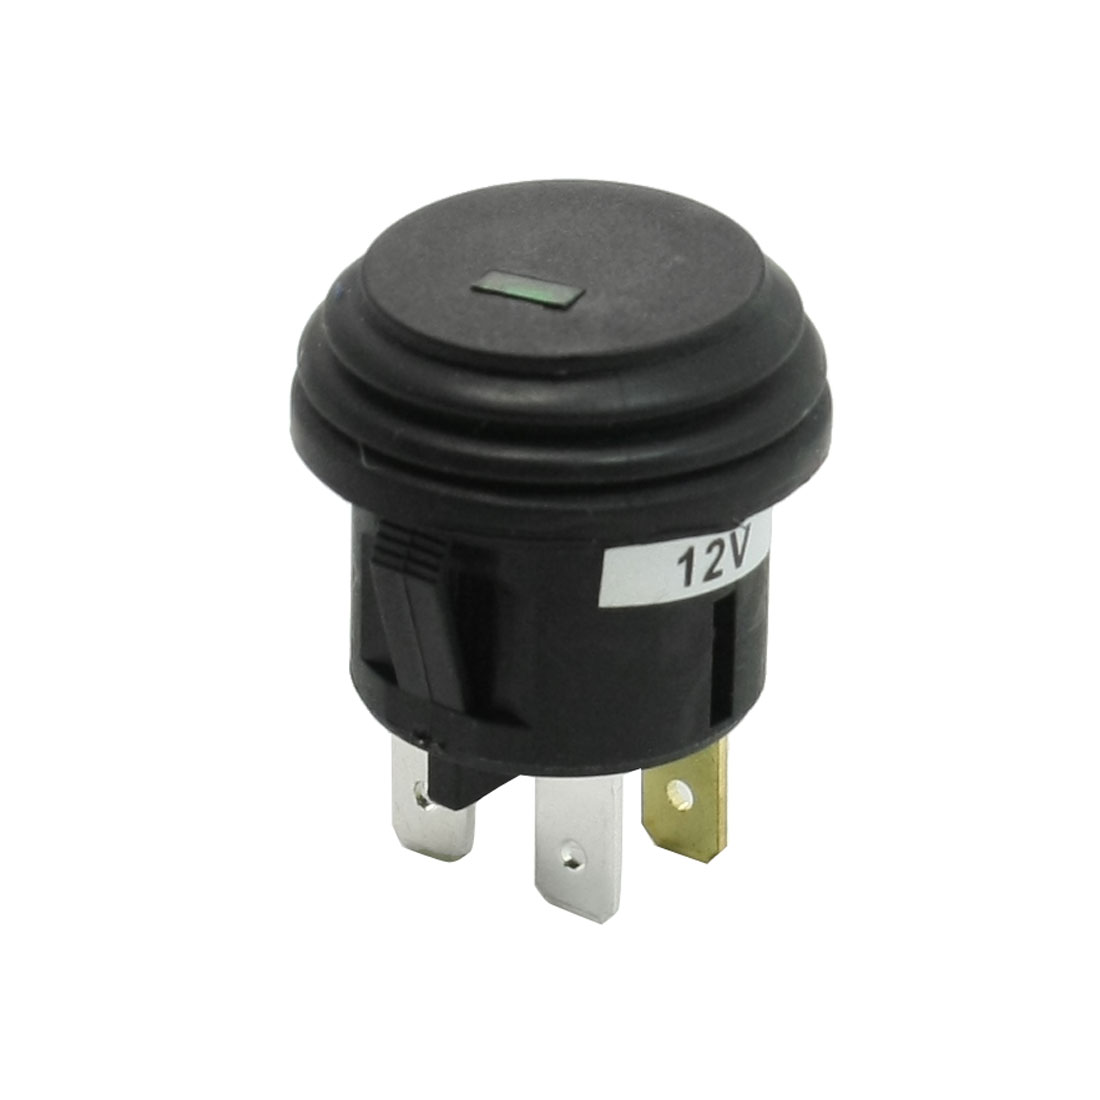 Green Indicator Self Locking 3 Terminals SPST Car Push Button Switch DC 12V 20A